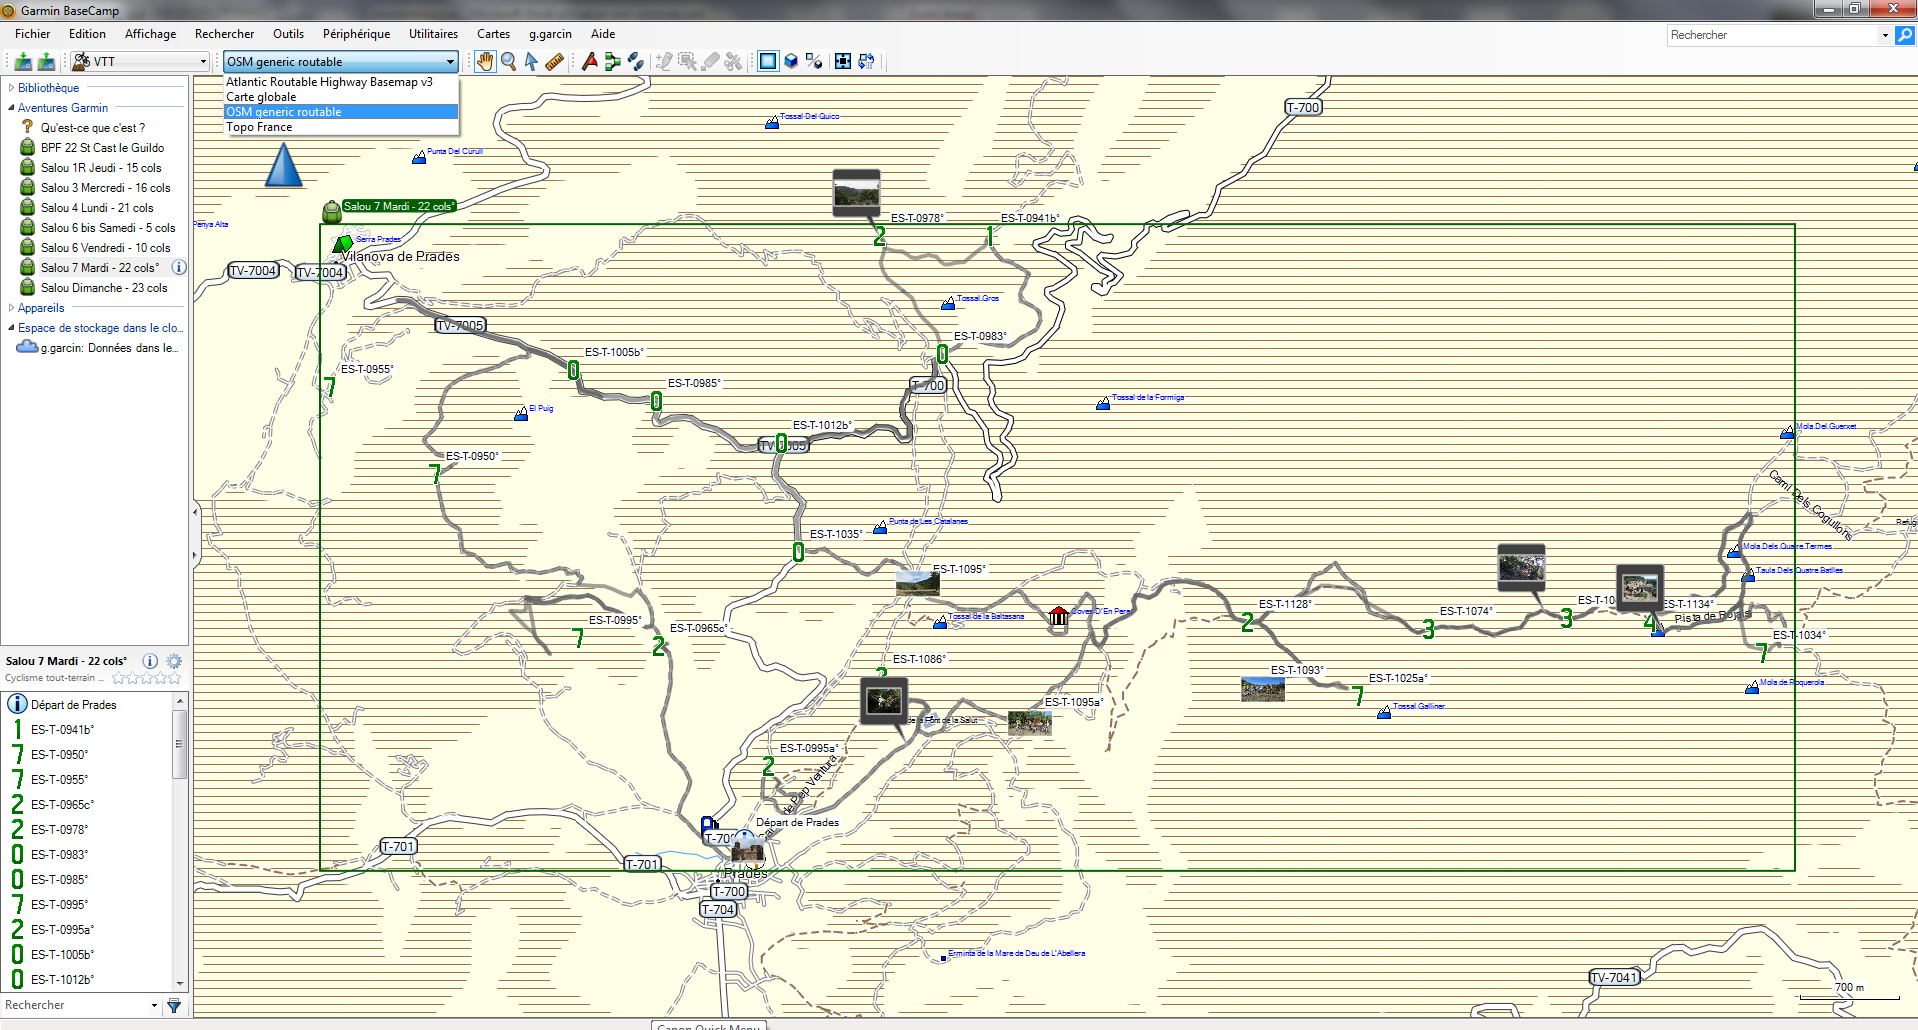 carte gps garmin usa gratuite